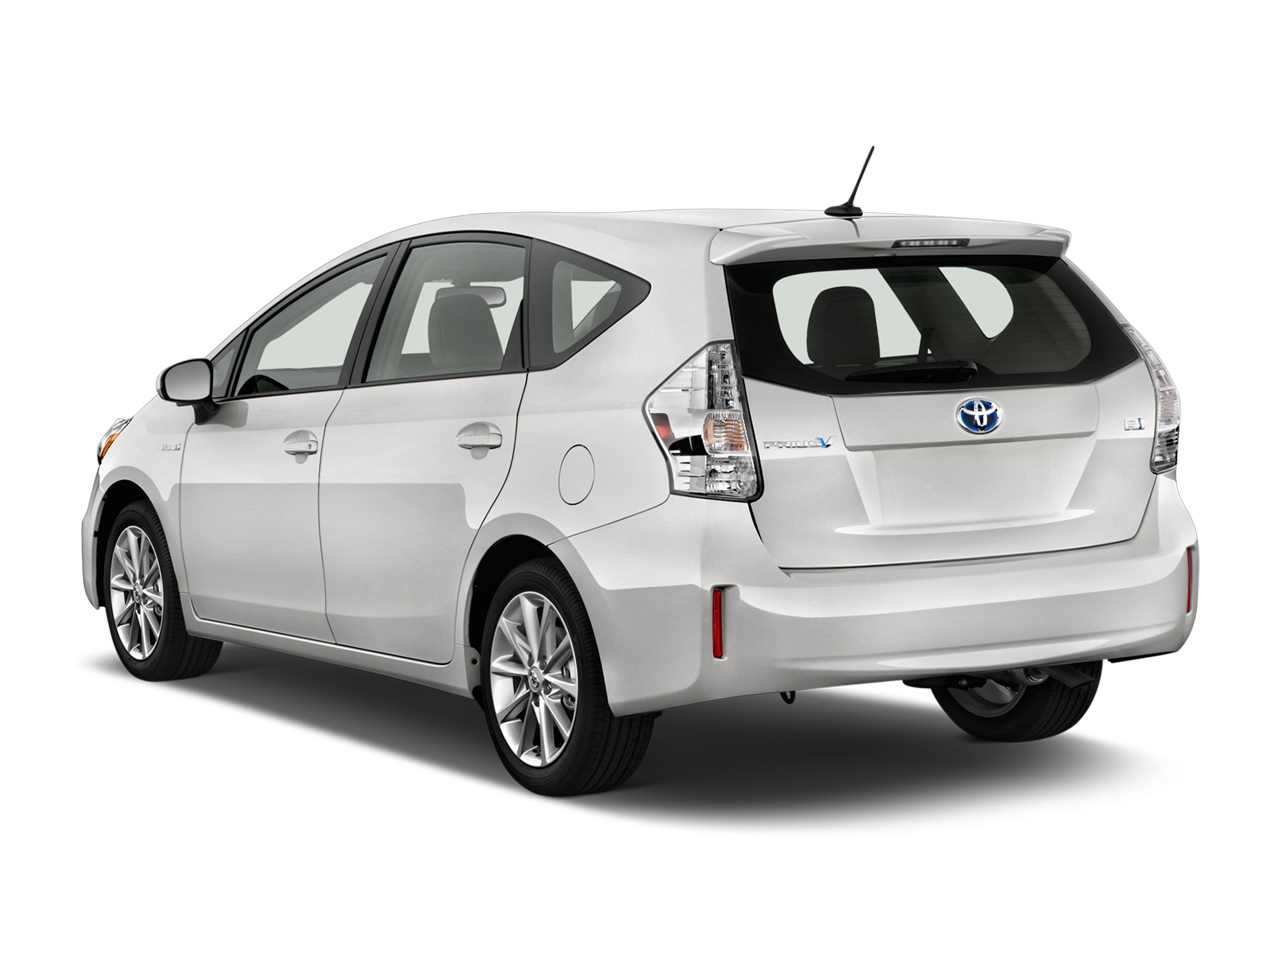 Prius For Sale Atlanta >> 2013 Toyota Prius V Review, Ratings, Specs, Prices, and Photos - The Car Connection